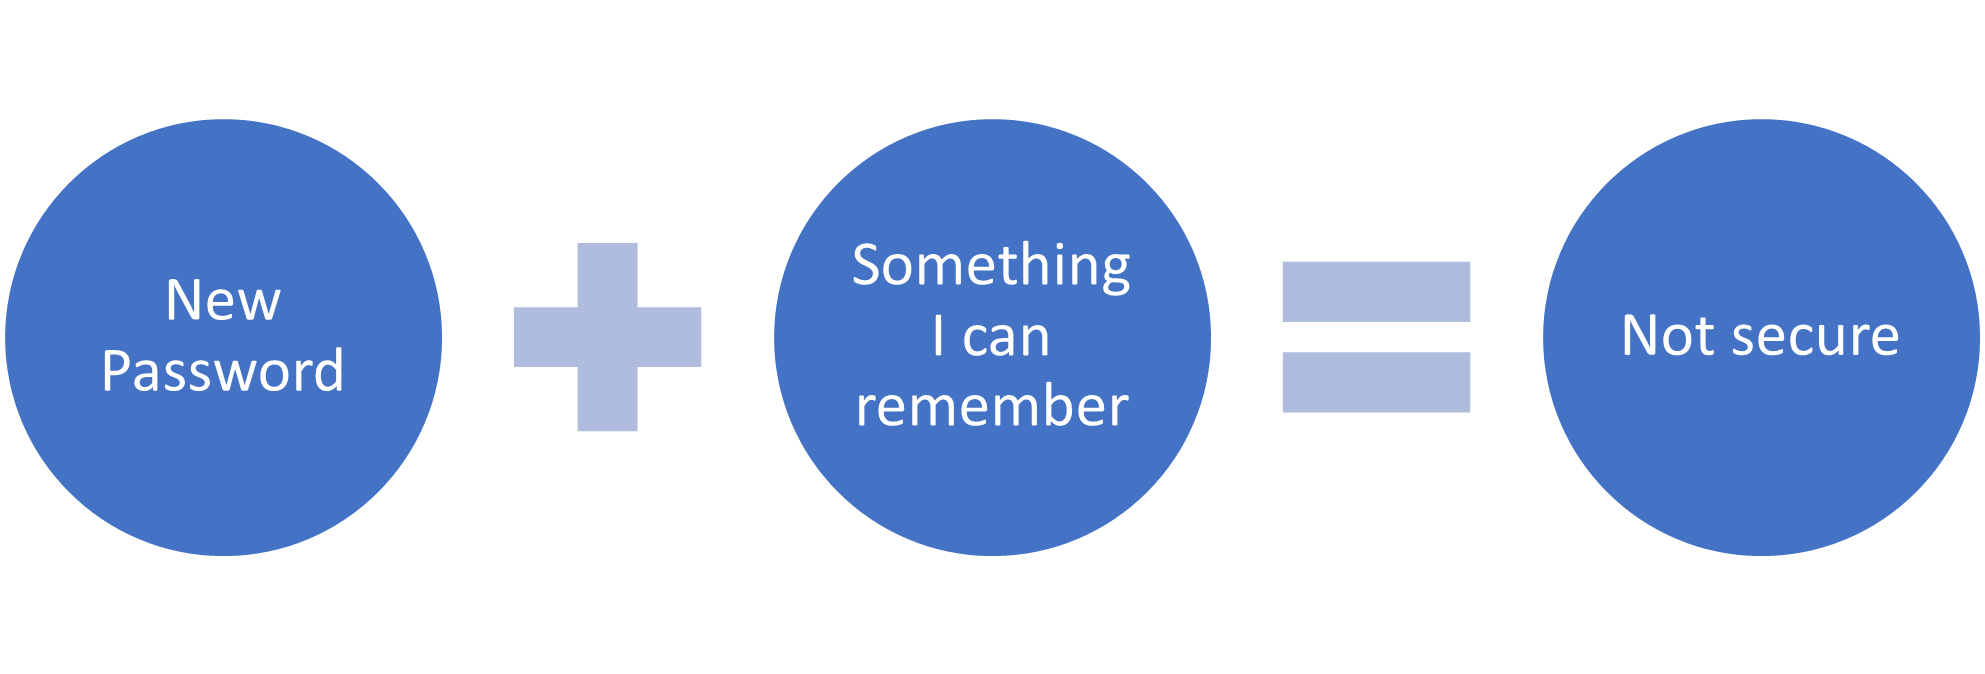 Graphic depicting how a new password that is easy to remember is not secure enough.